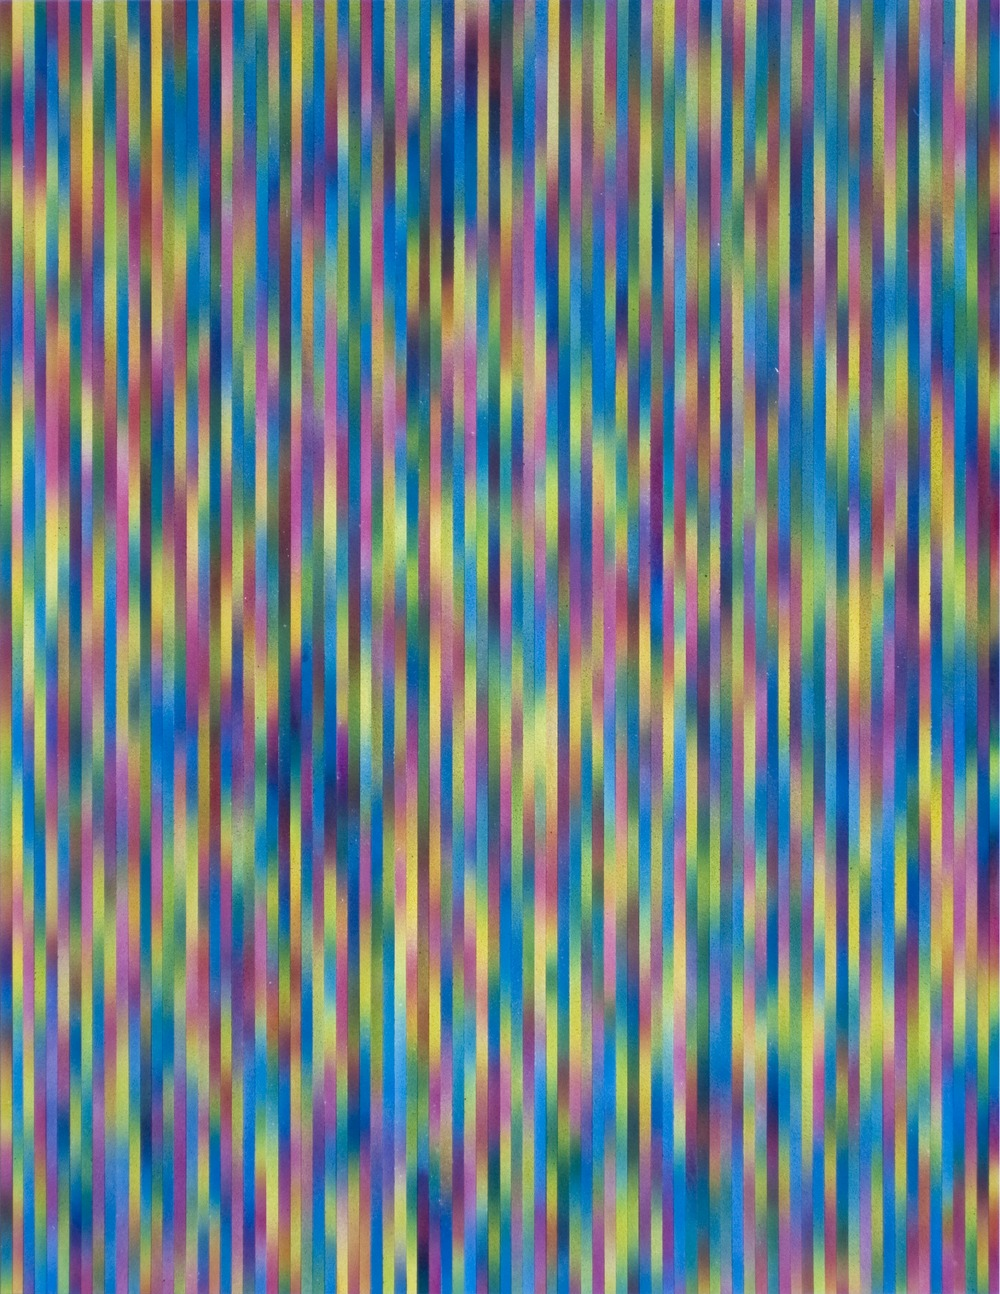 An image of multi-colored static pattern.